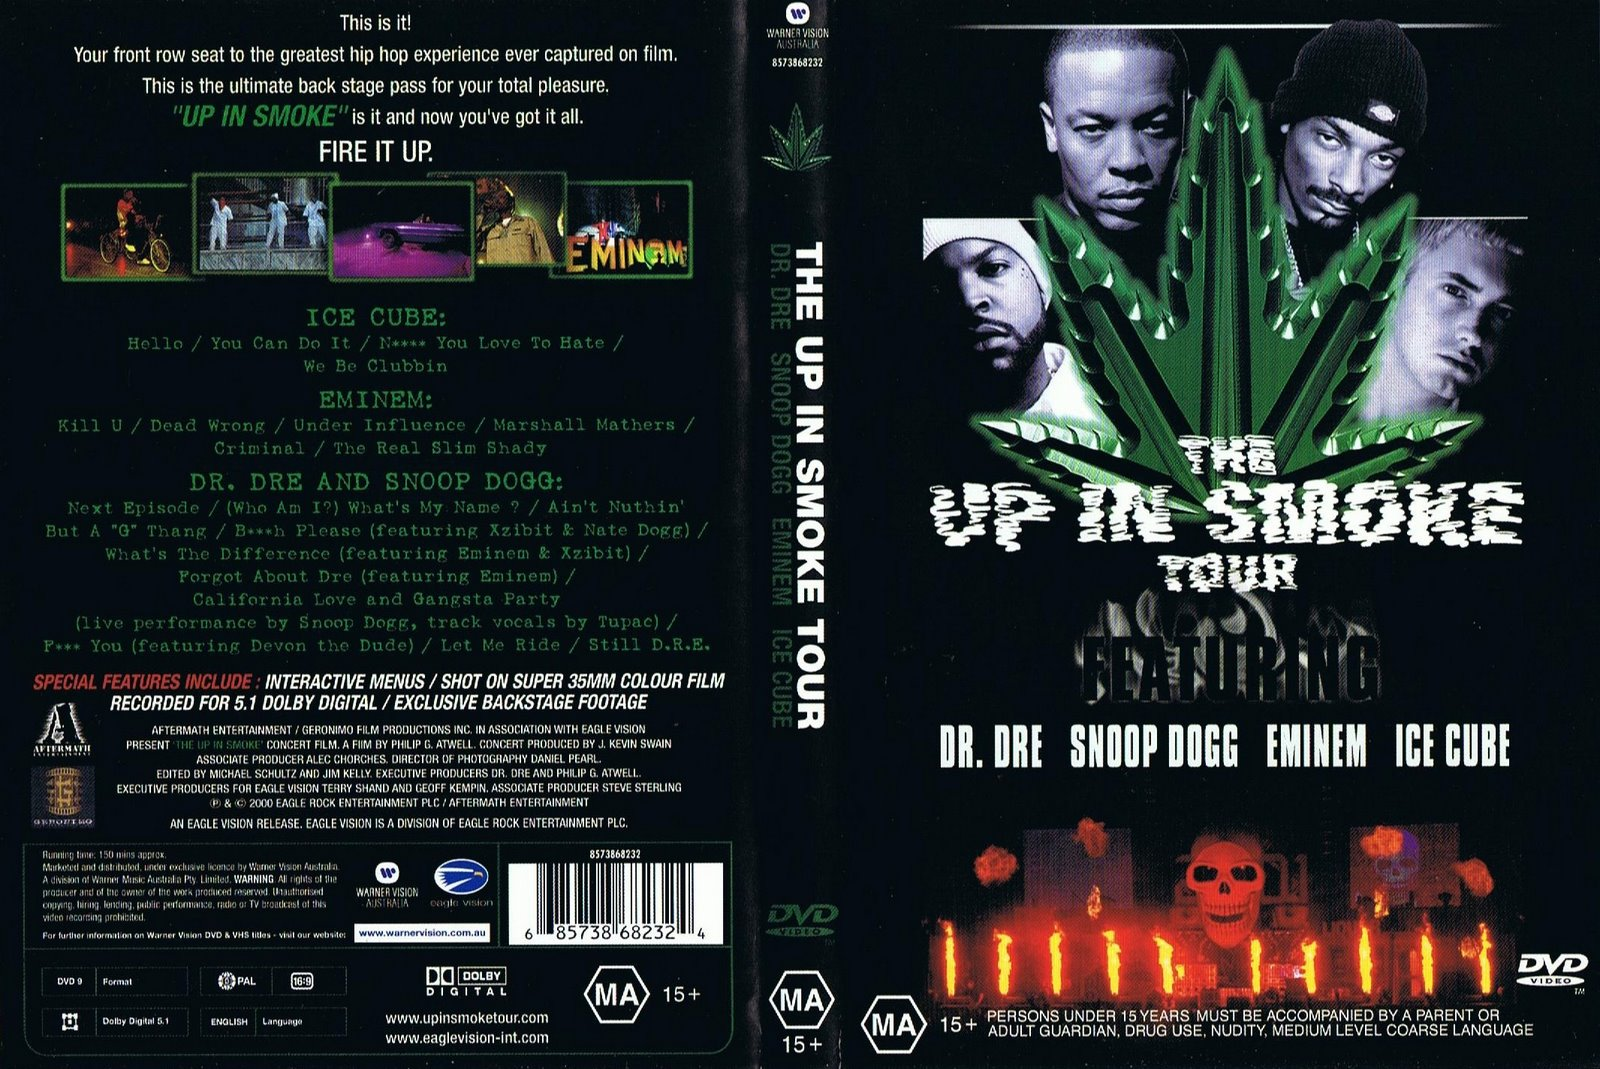 2S1K - The Wise Shall Stand: Dr Dre Up In Smoke Tour 2000